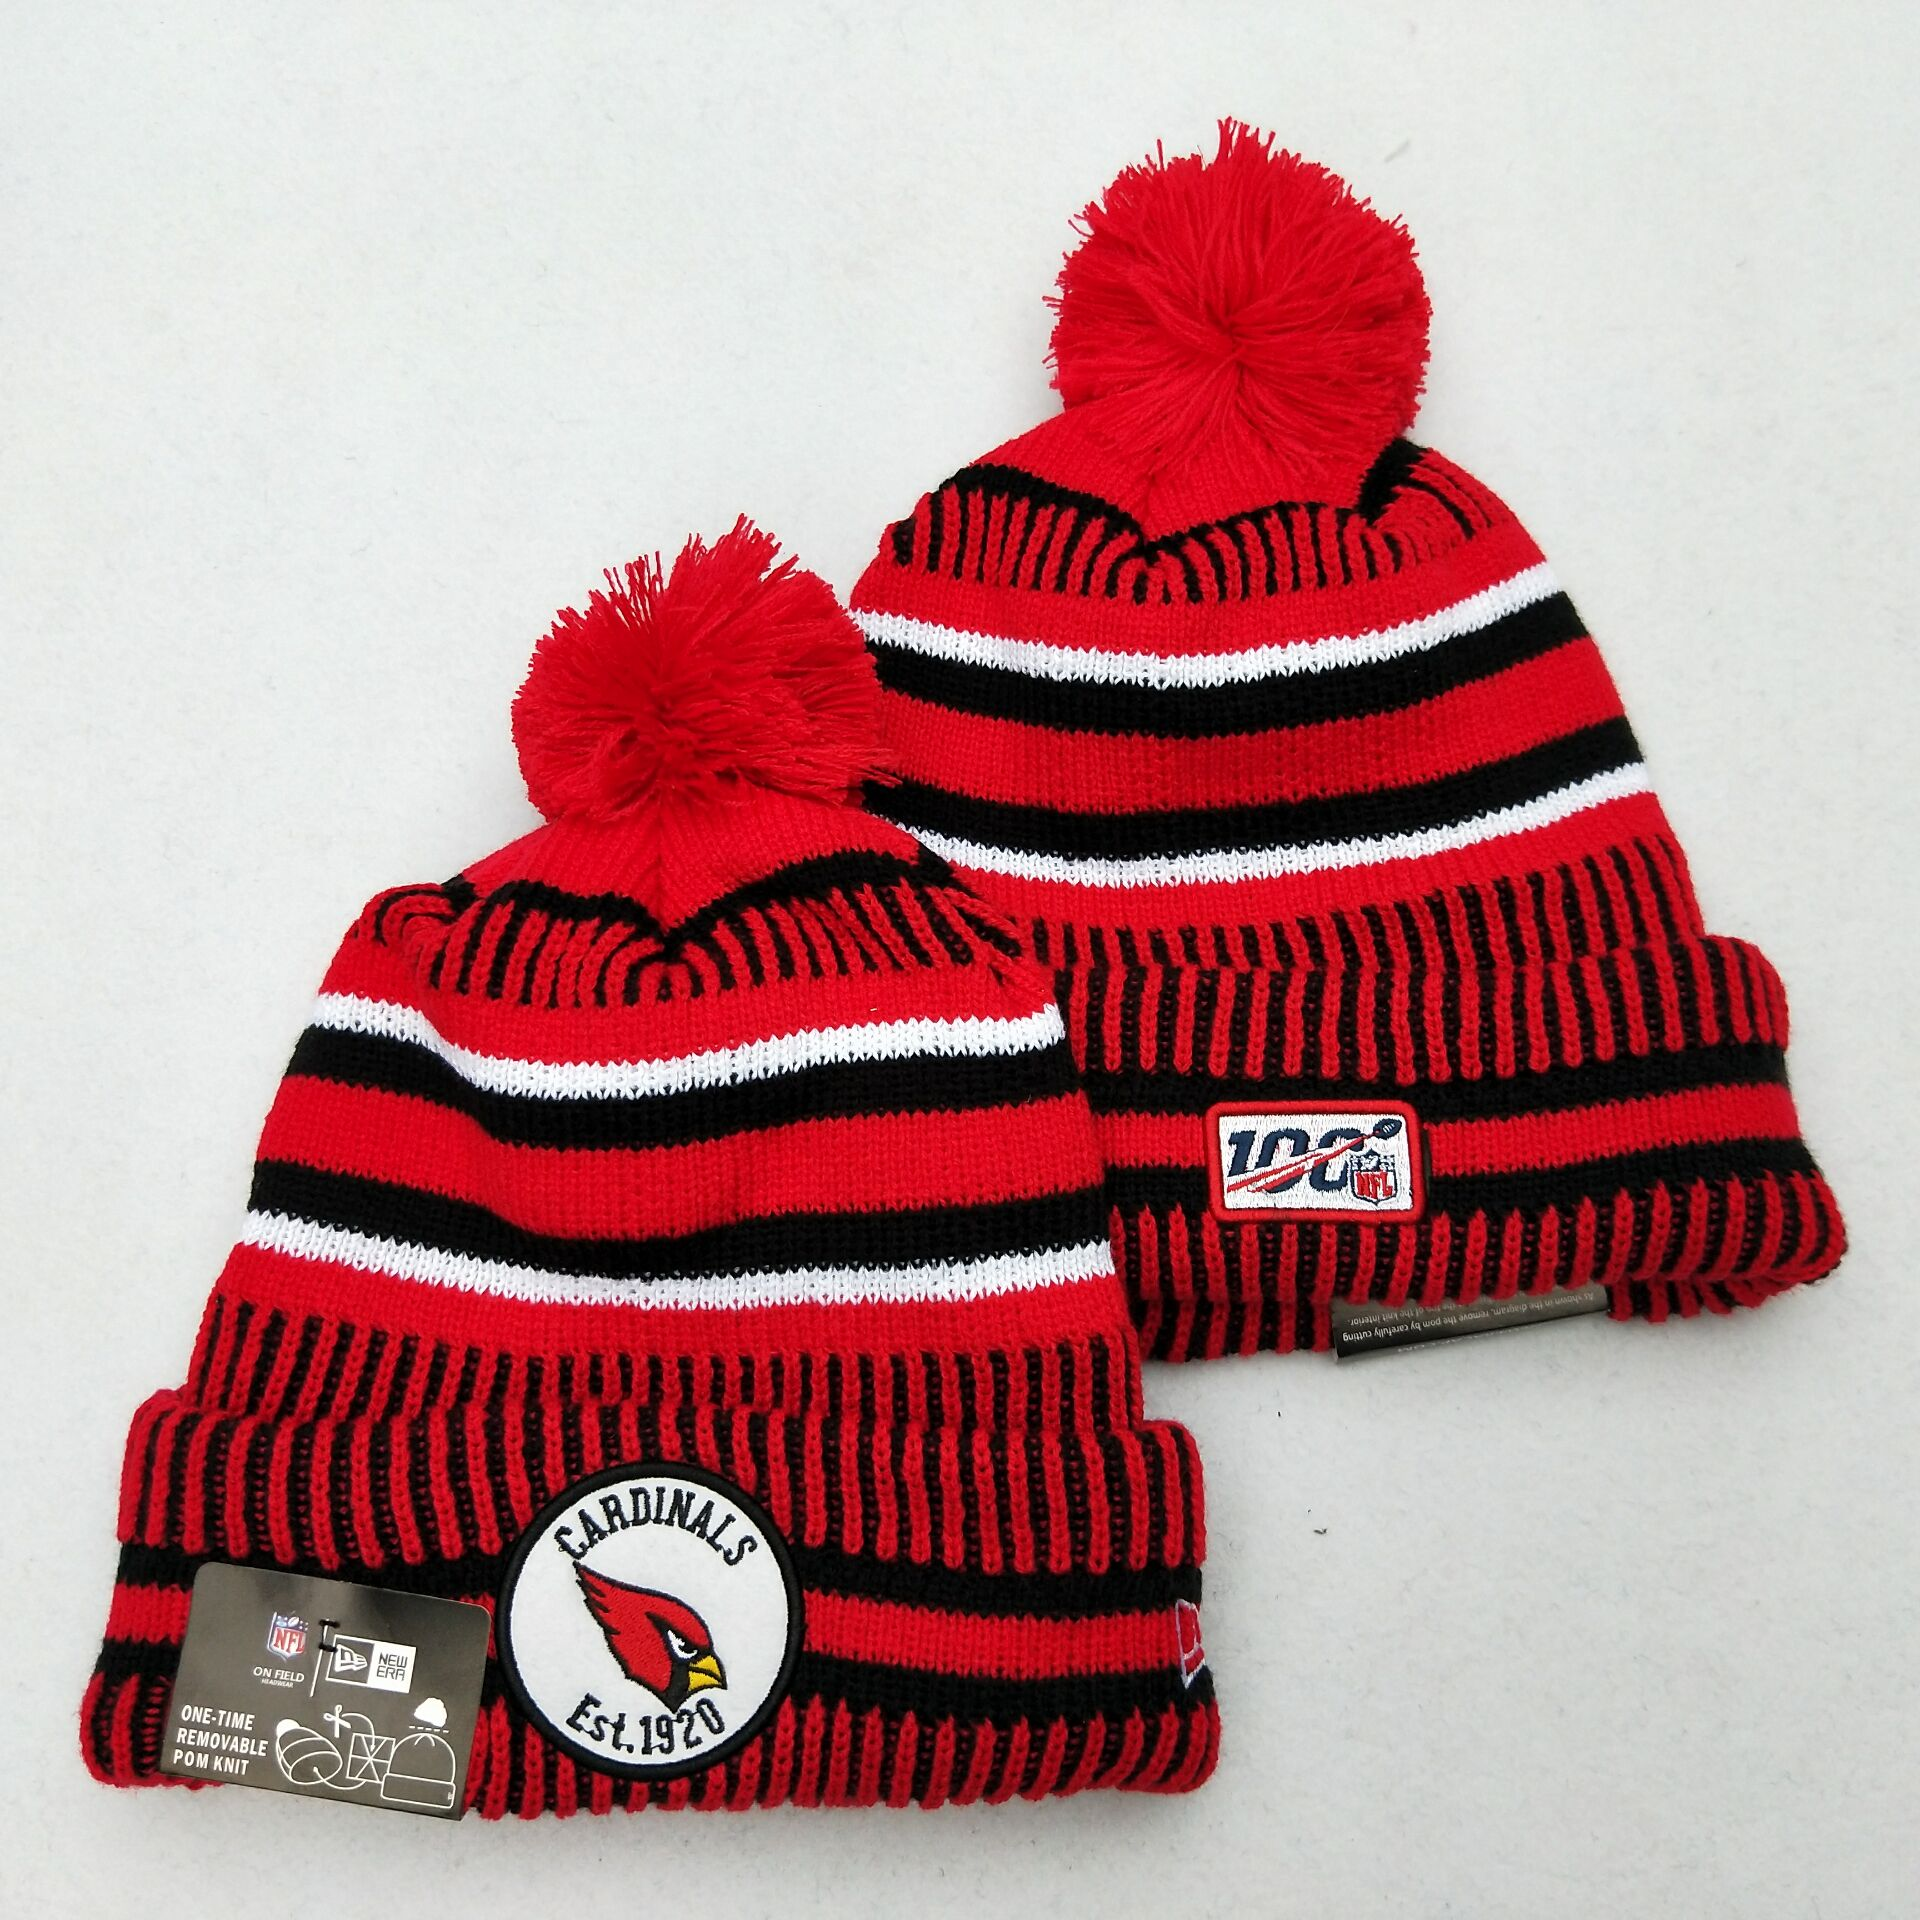 Arizona Cardinals Team Logo Red 100th Season Pom Knit Hat YD